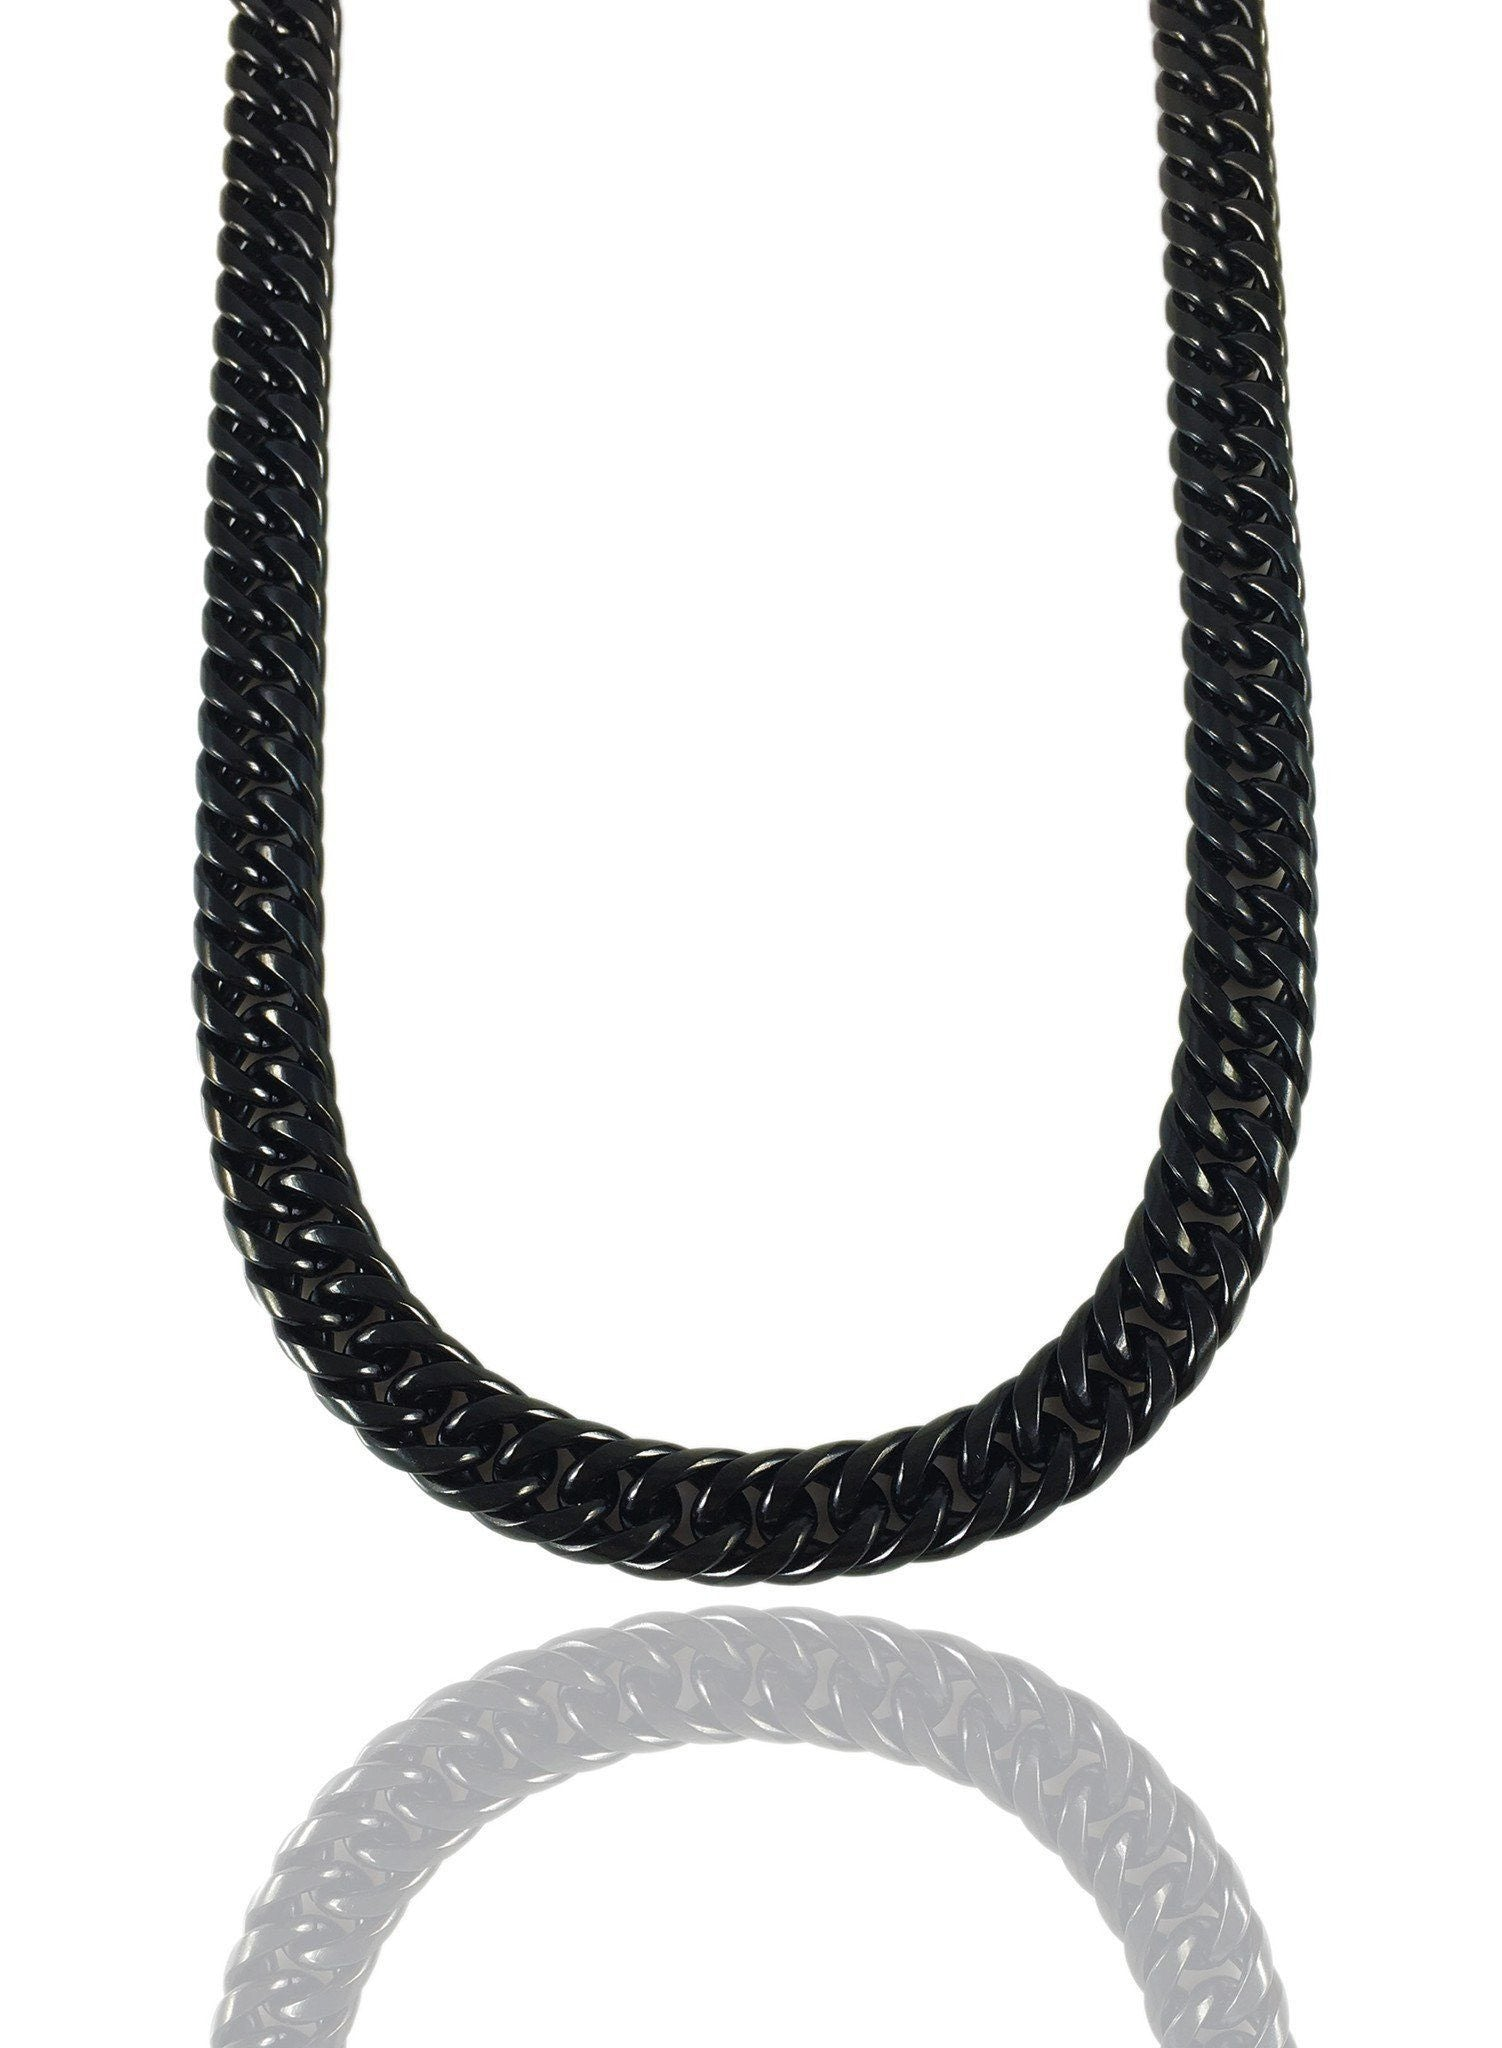 Necklace - The Cuban Link Chain X BLΛCK